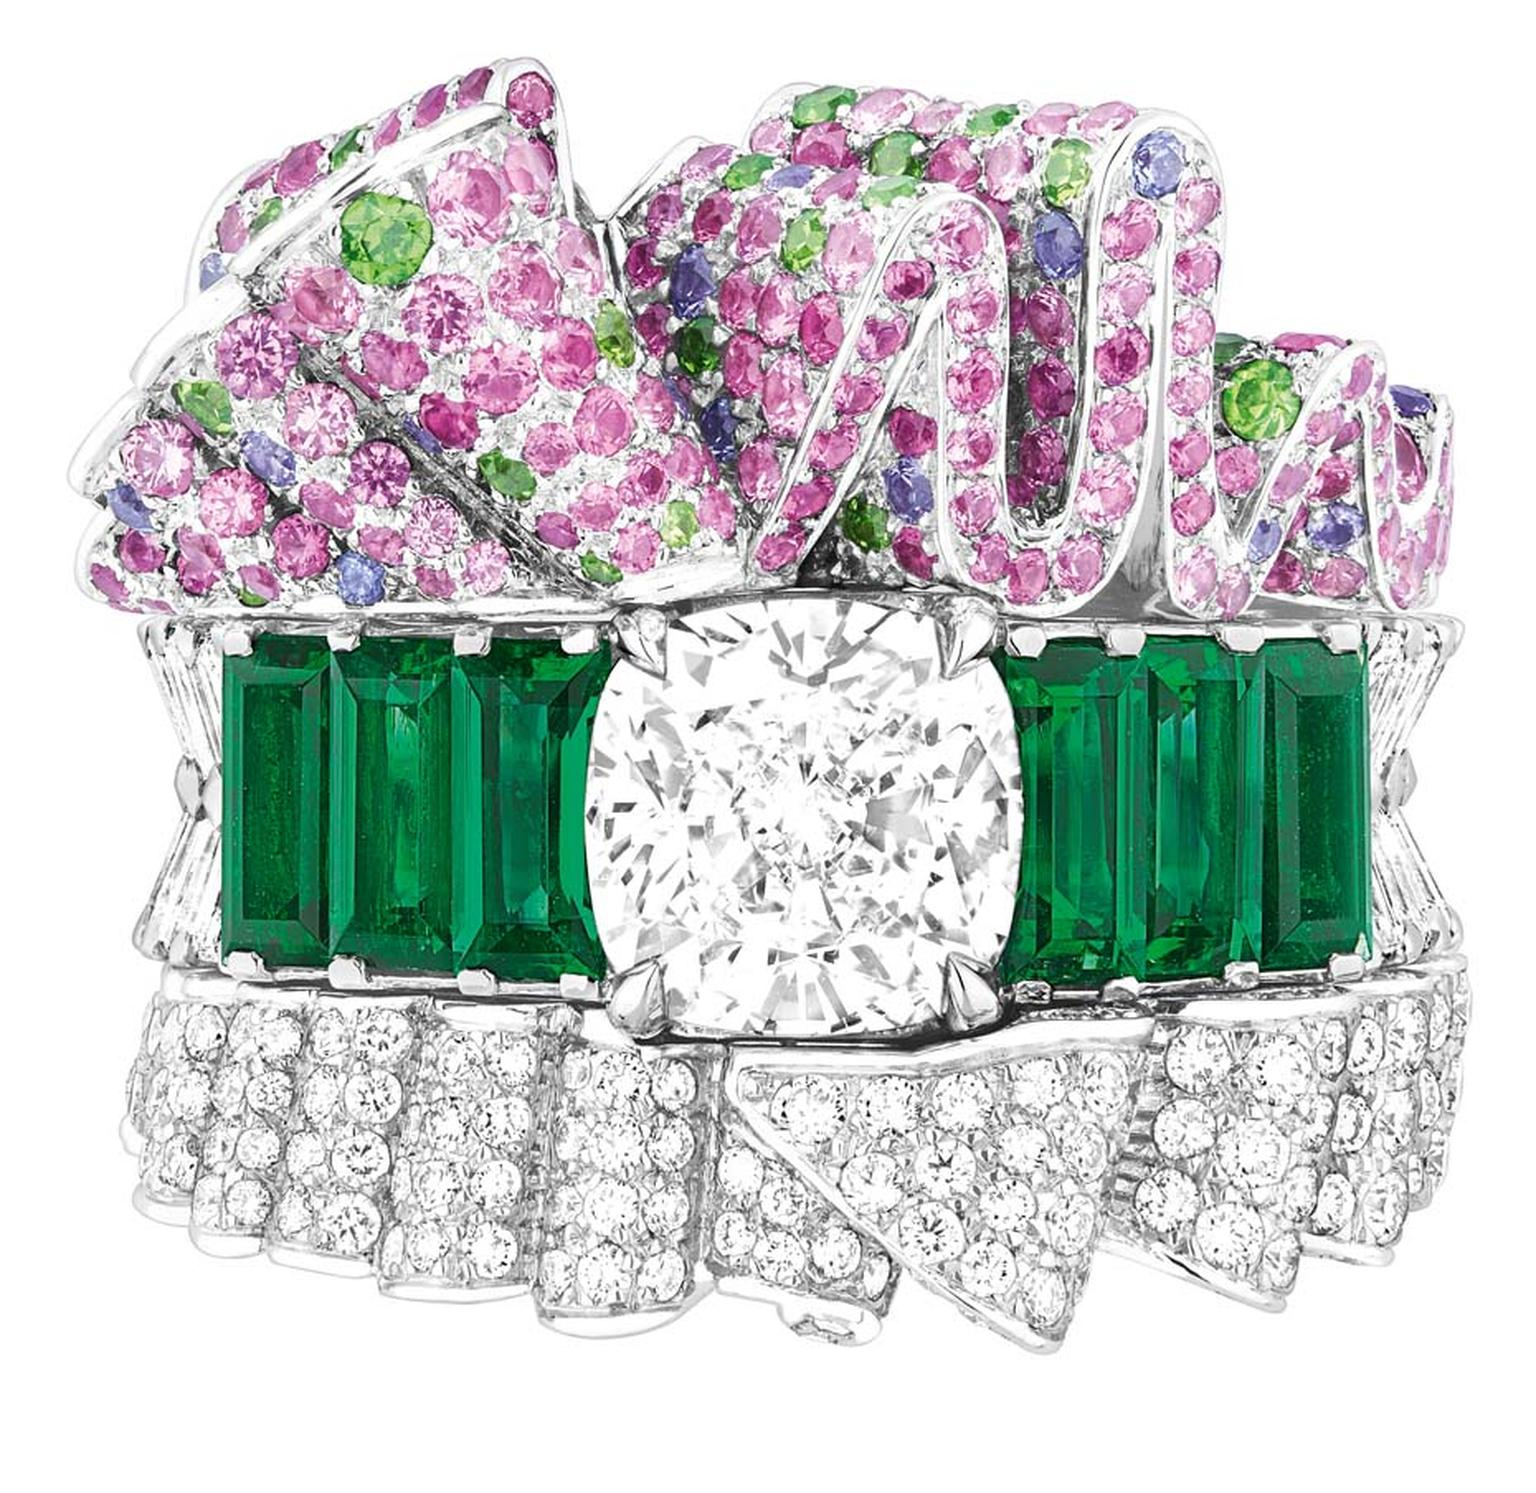 Dior Bar en Corolle Diamant ring in white gold with diamonds, pink and purple sapphires, emeralds and demantoid garnets.